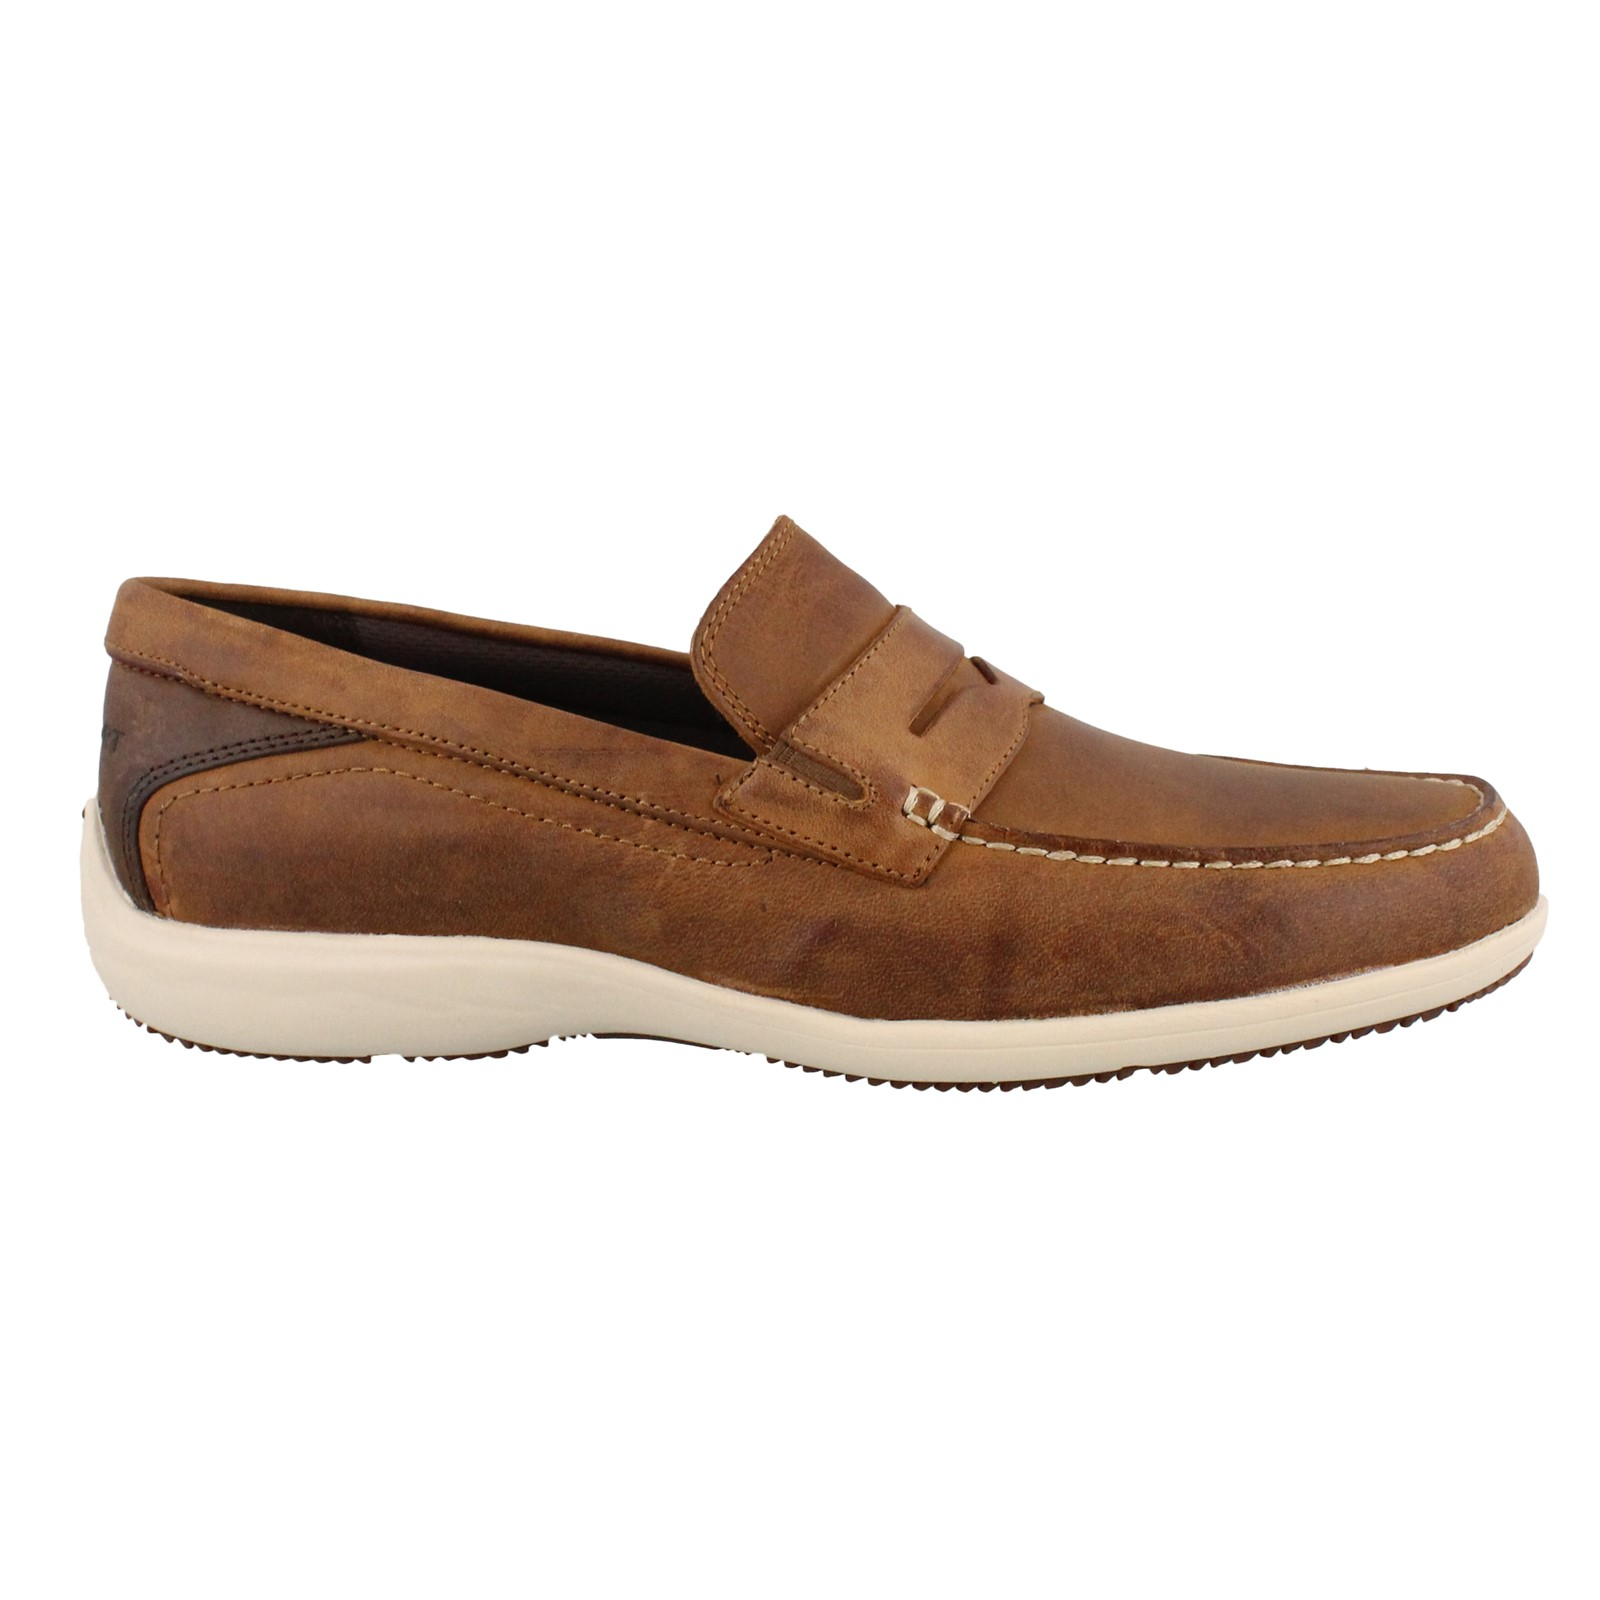 Men's Rockport, Aiden Penny Loafers